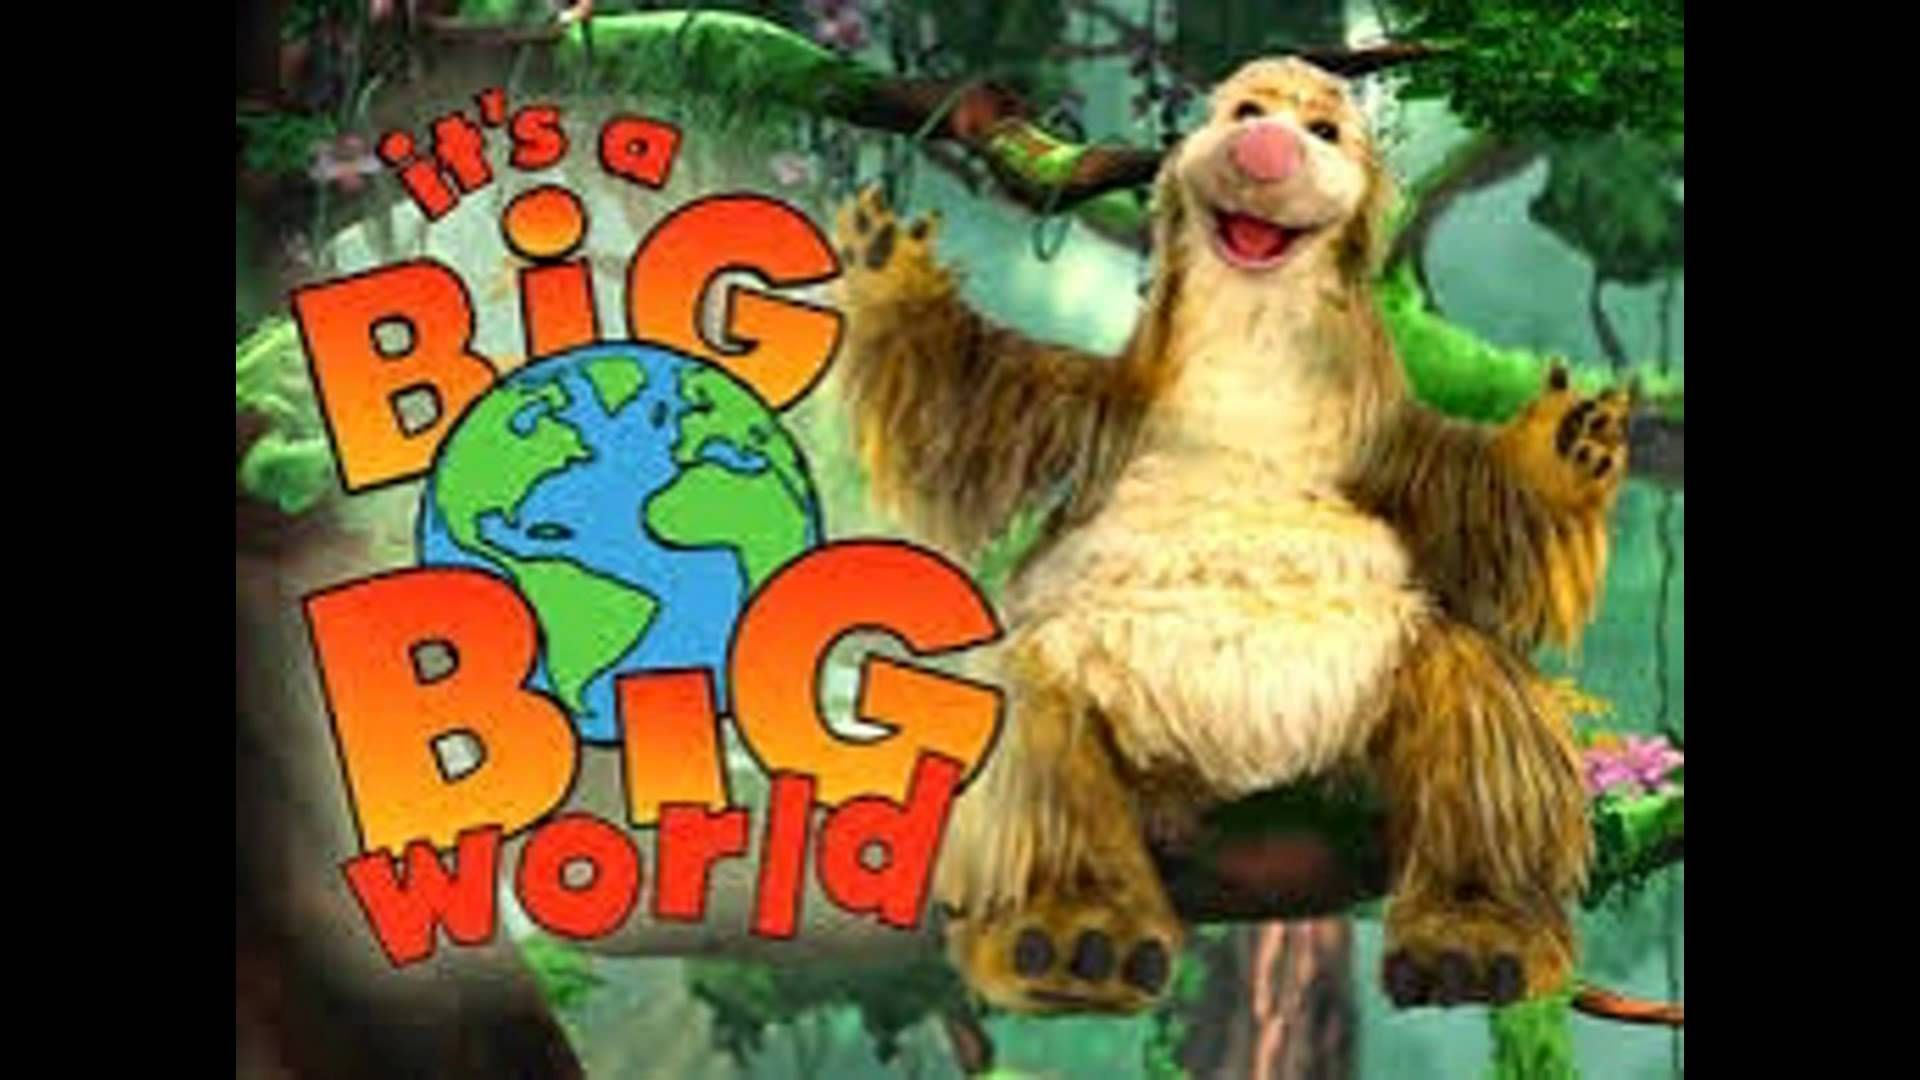 Old And New Pbs Kids Shows Update Youtube Early 2000s Kids Shows Old Kids Shows Old Pbs Kids Shows